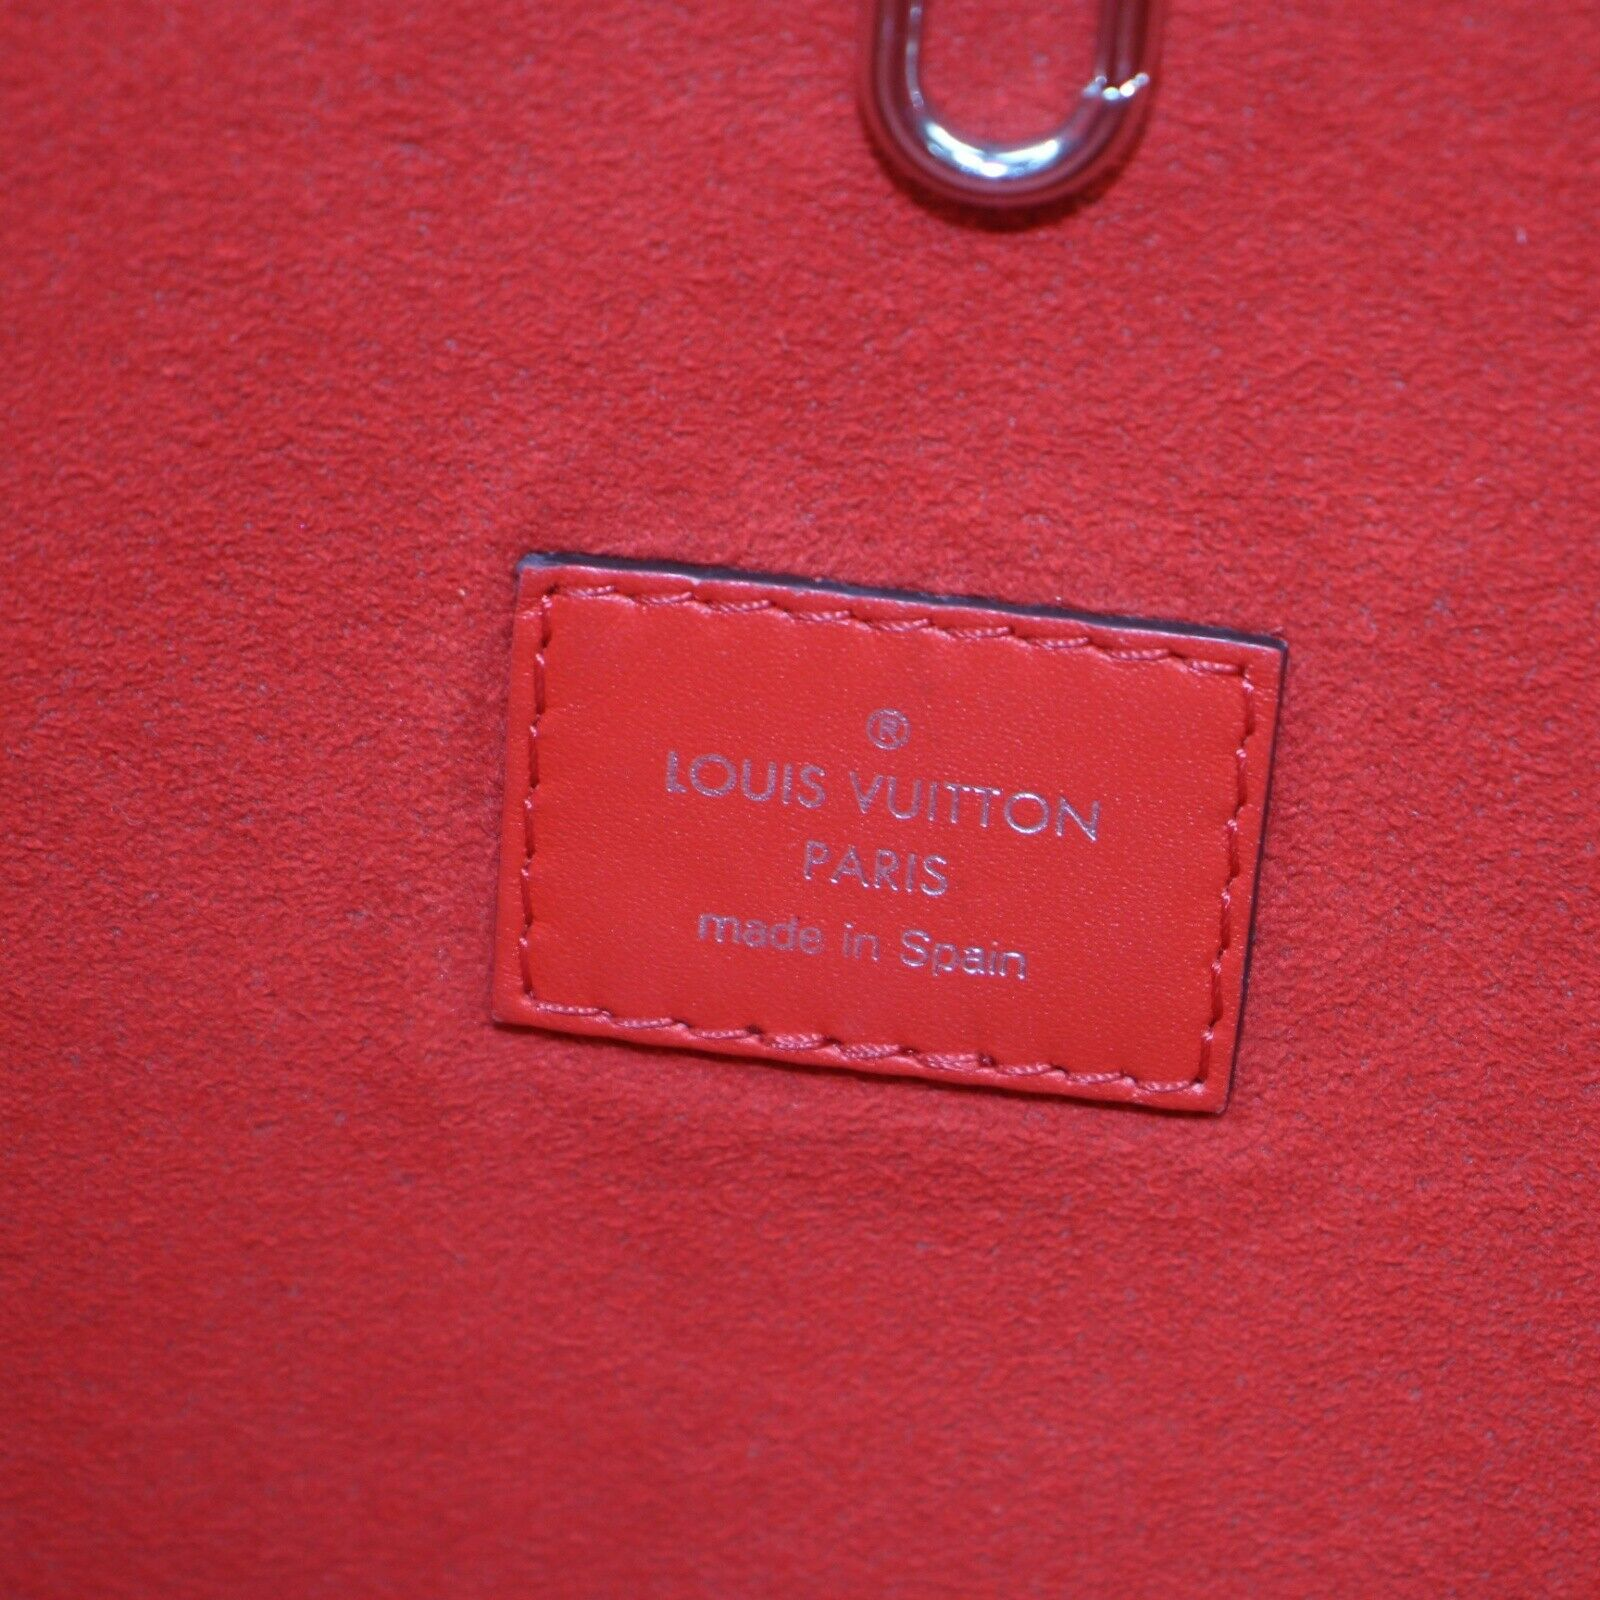 Louis Vuitton M41318 Neverfull MM Red Epi Tote Bag 11443